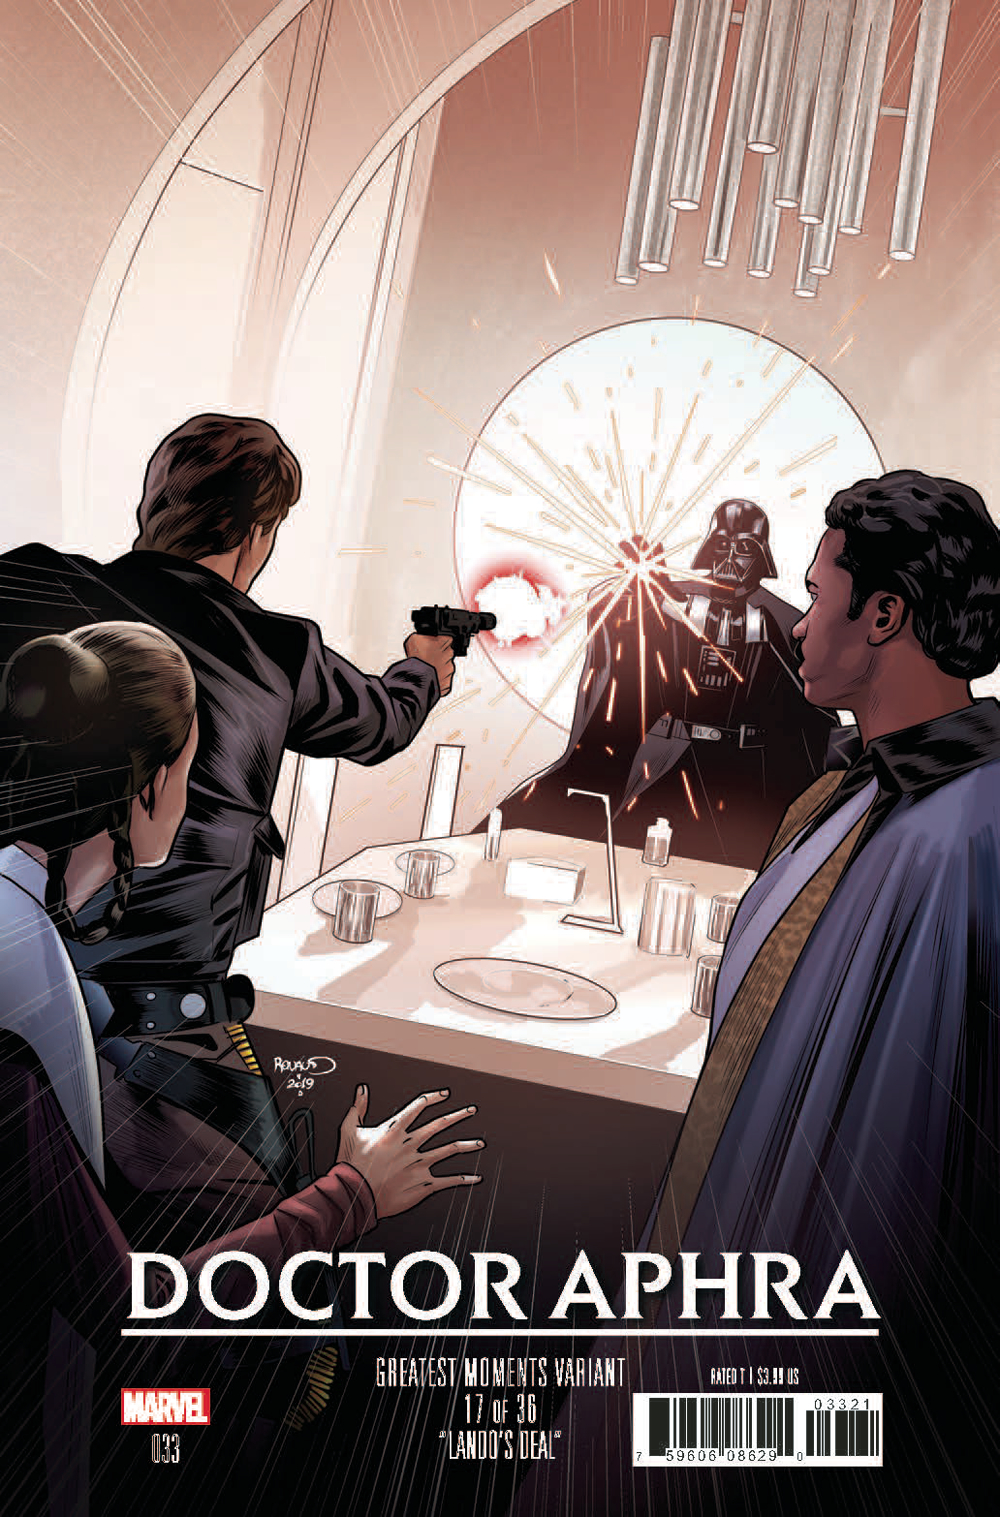 STAR WARS DOCTOR APHRA #33 RENAUD GREATEST MOMENTS VAR